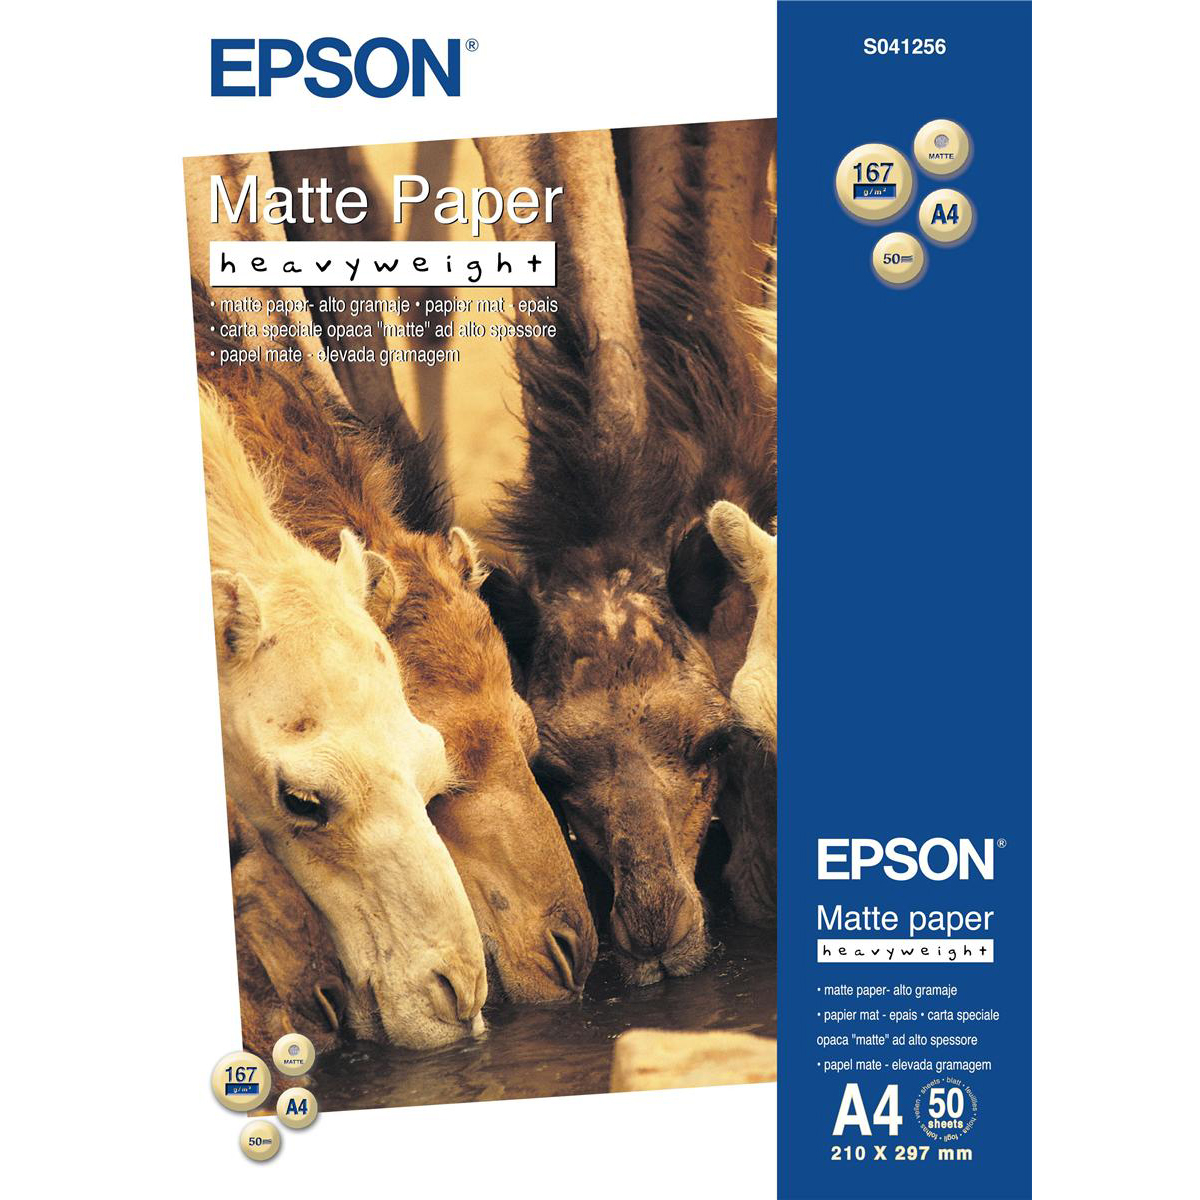 Epson A4 Heavy Weight Matte Paper 50 Sheets 167gsm White Ref C13S041256 3 to 5 Day Leadtime